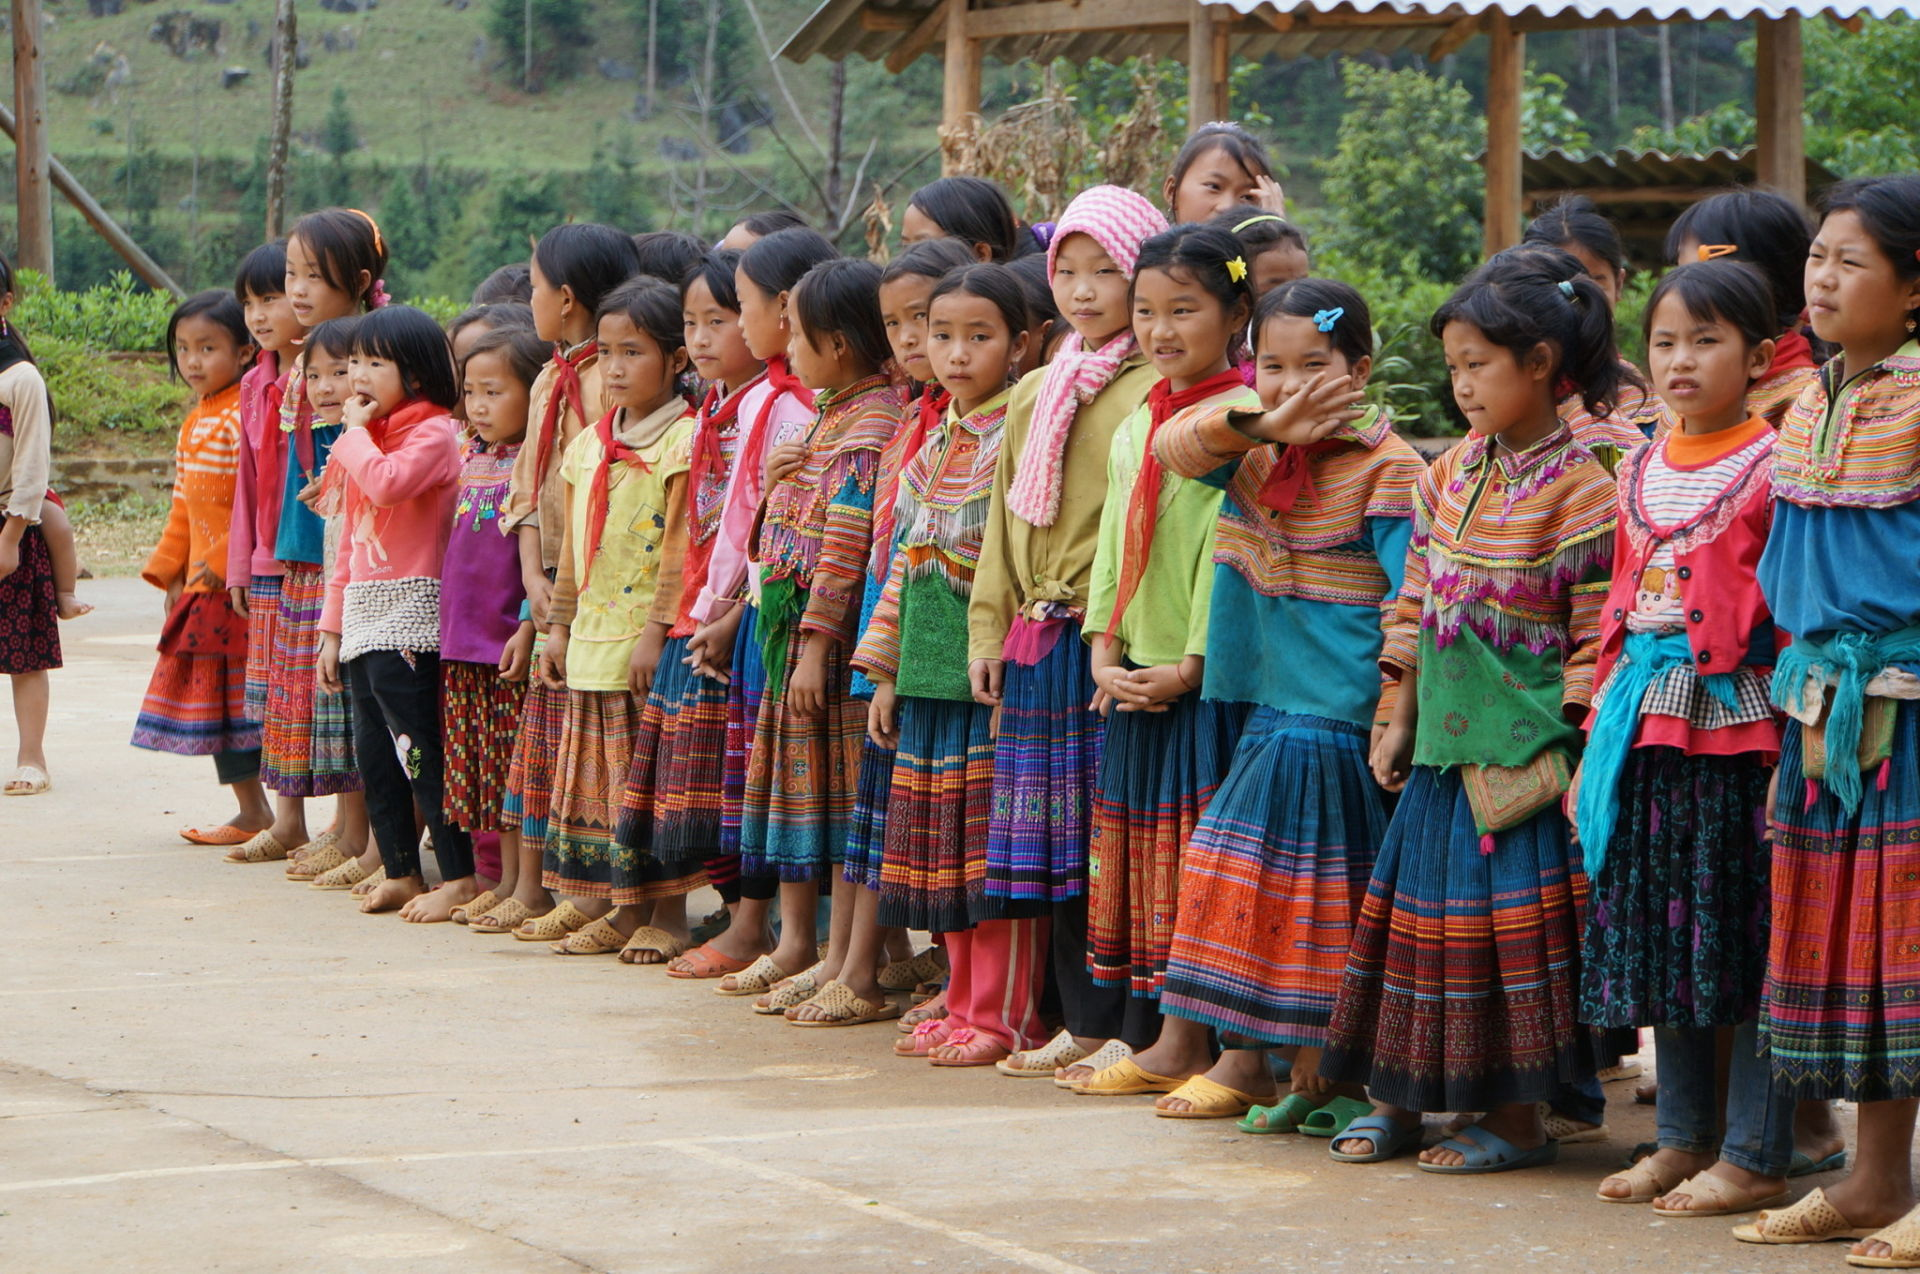 Colorful handmade clothing. Hmong style. Si Ma Cai, Northern Vietnam.